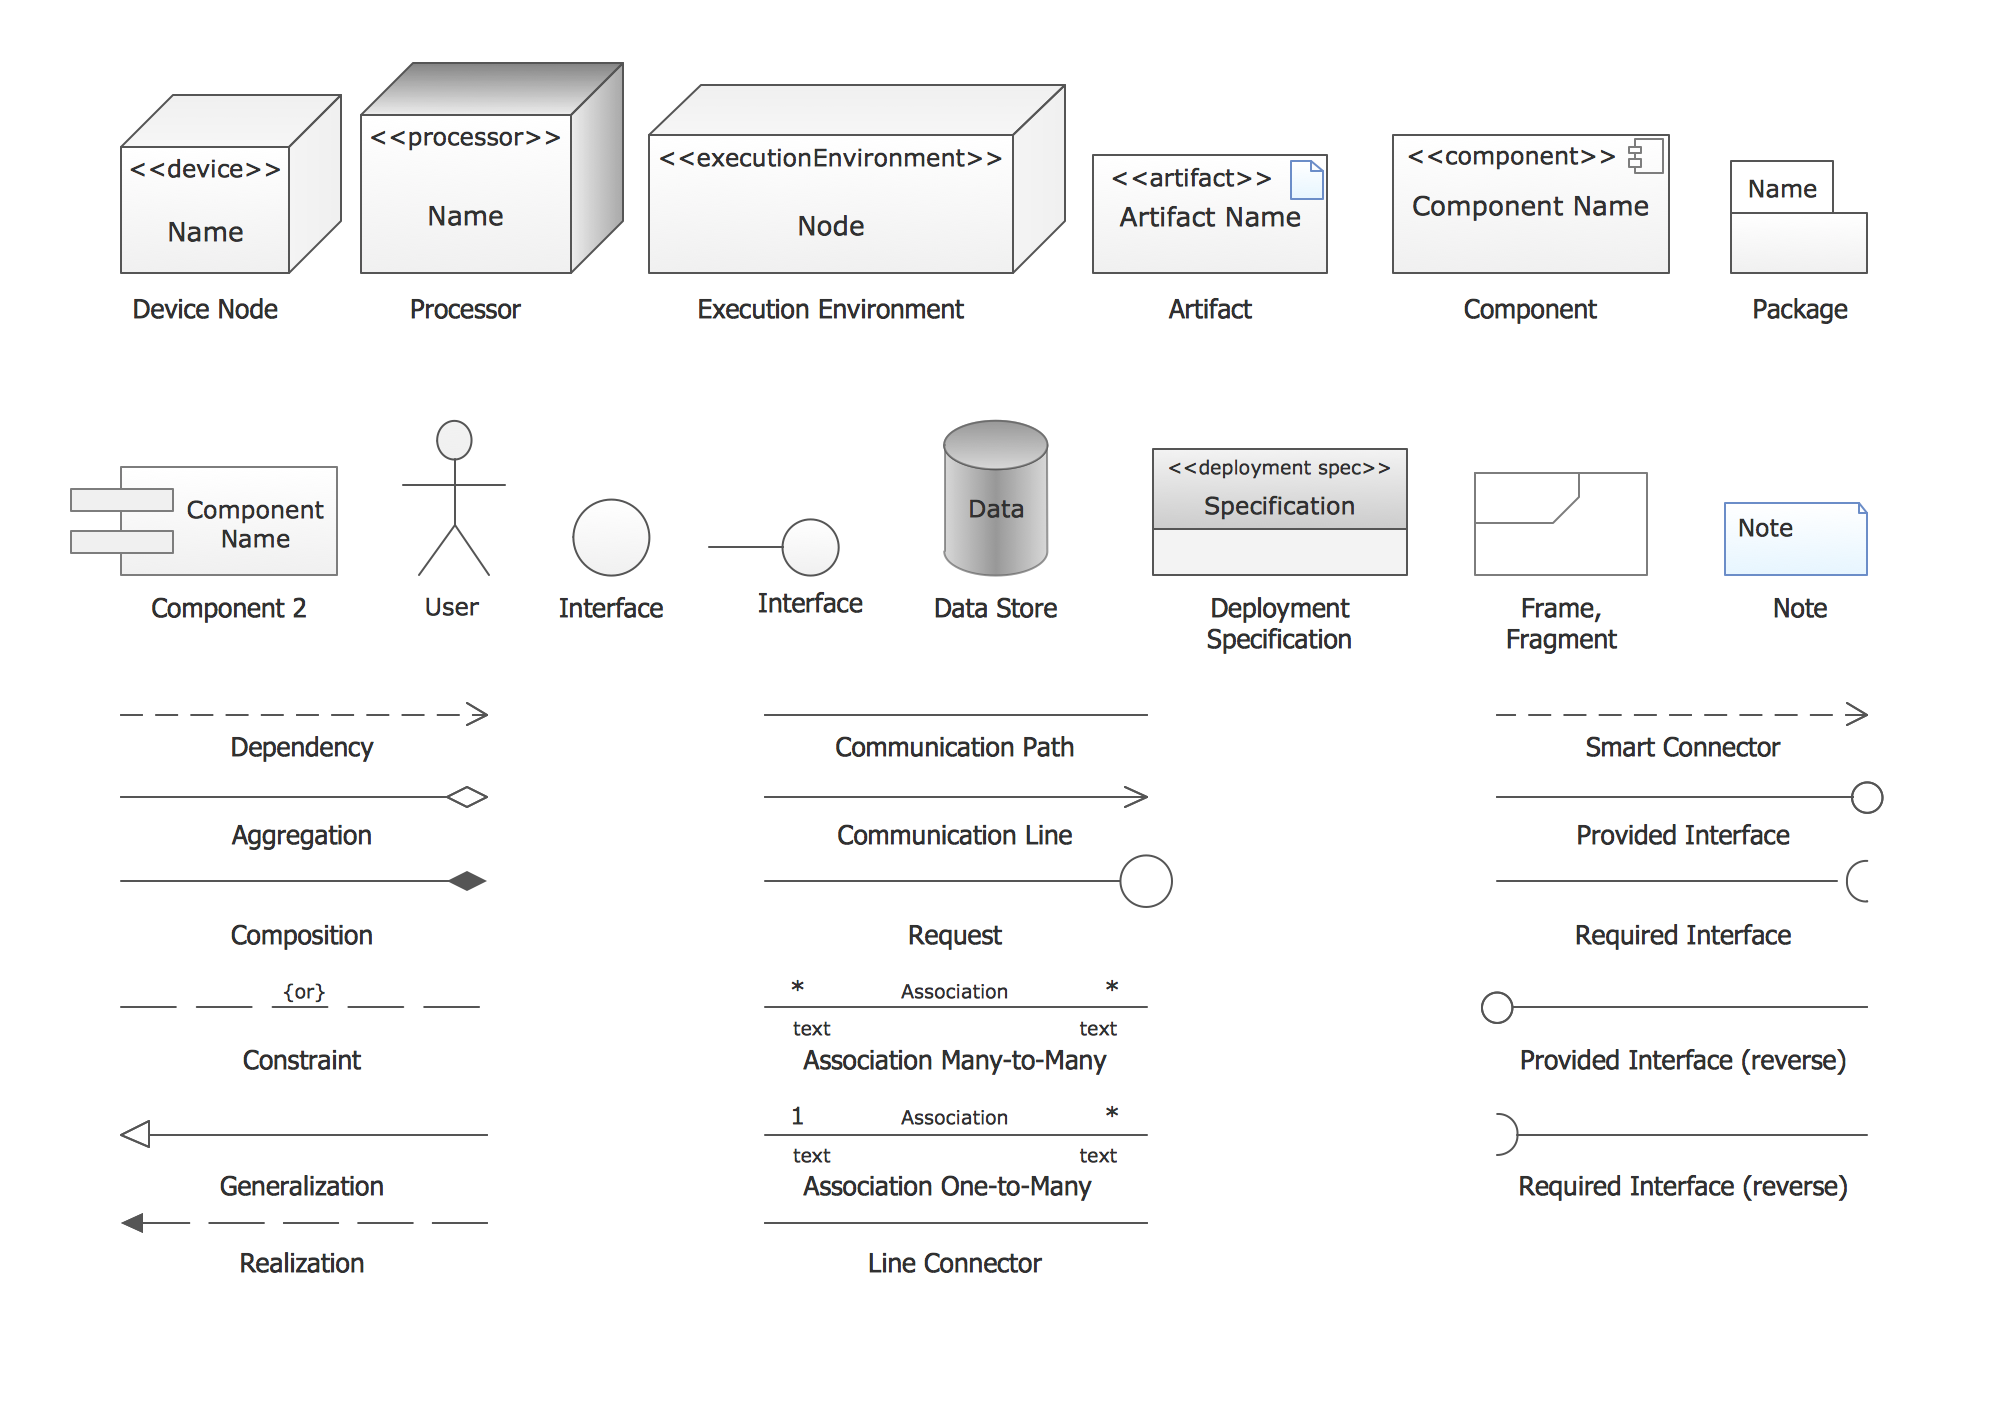 uml deployment diagram example   atm system uml diagrams   uml    uml deployment diagram  design elements